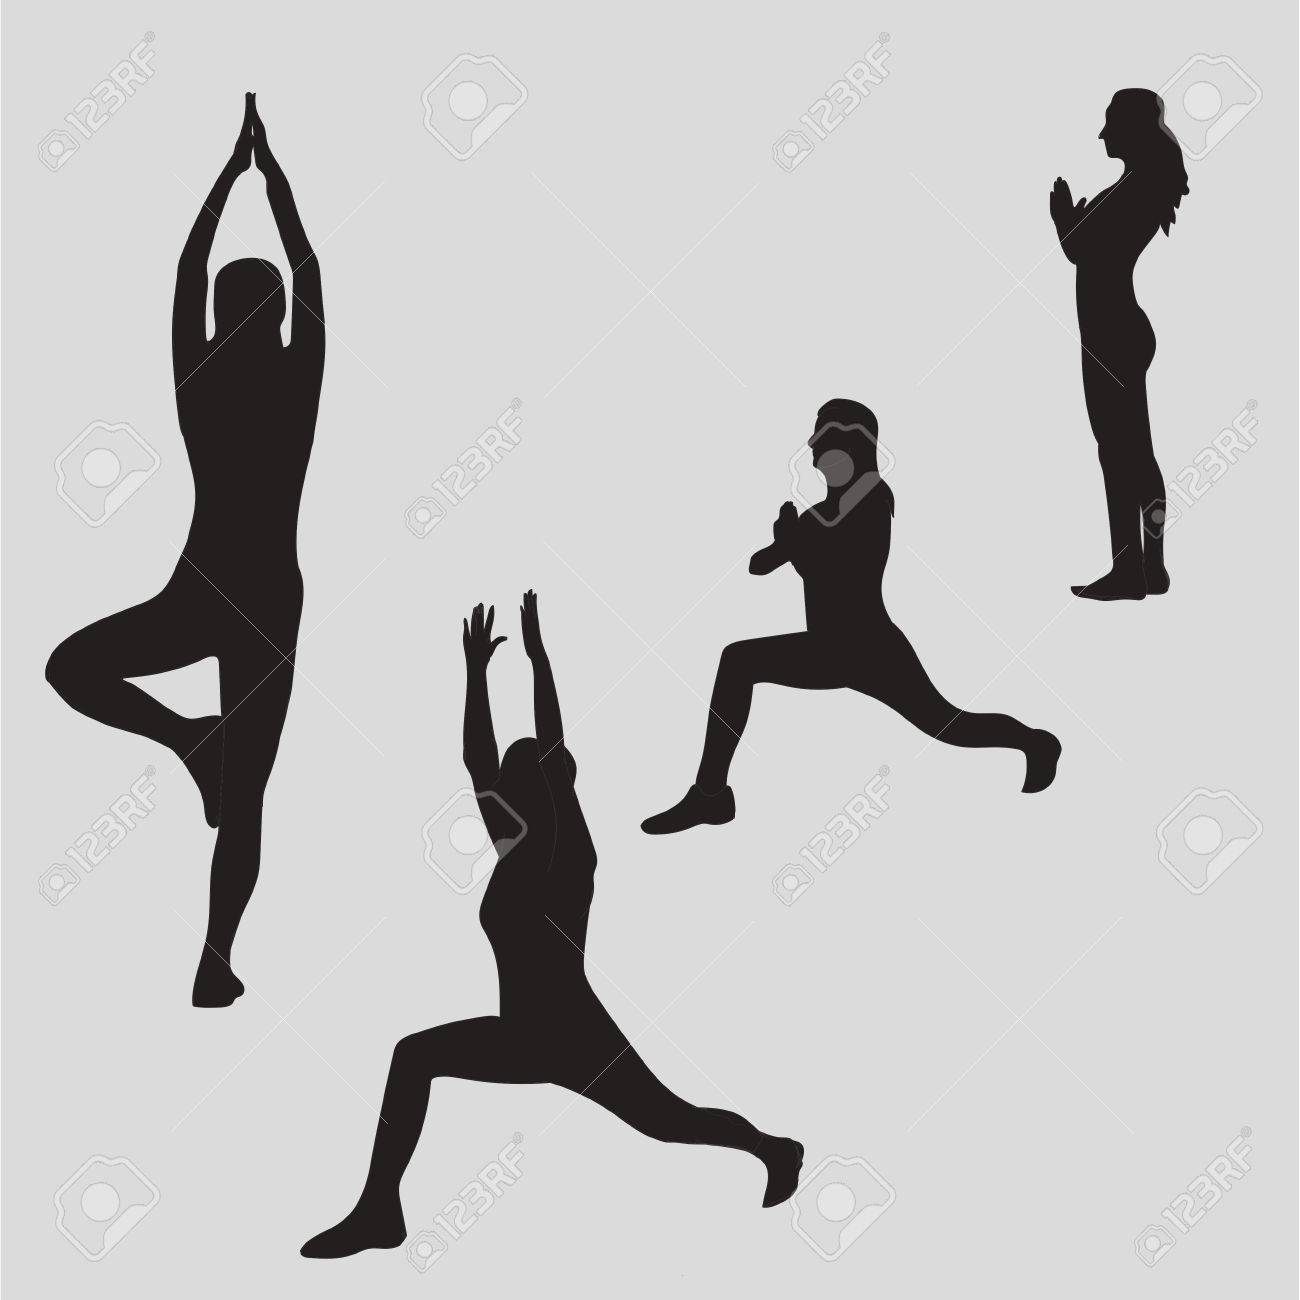 Woman Meditating In Different Yoga Poses Silhouette Zen Meditation Peace